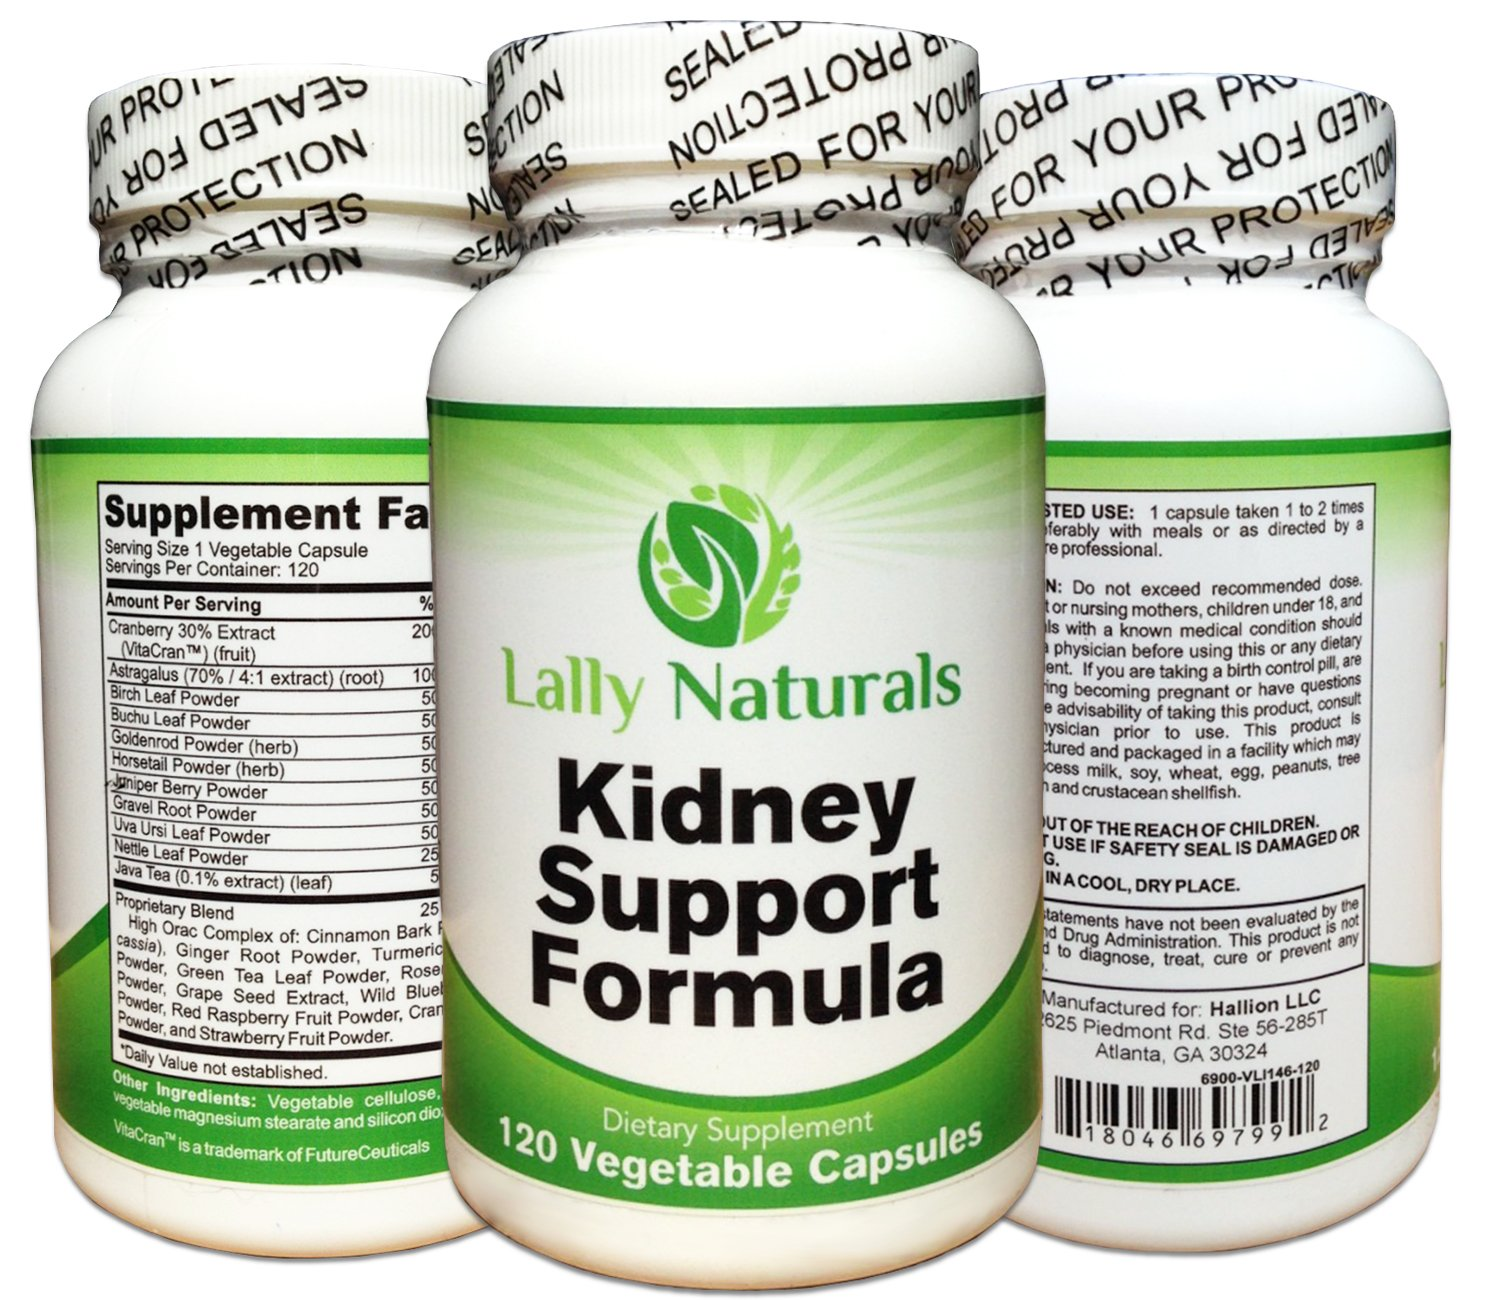 Kidney Support, Cleanse & Detox Supplement with Organic Cranberry - 120 Vegan Capsules ★ Natural Kidney Cleanse ★ Astragalus, Buchu, Juniper Berries & more. Supports the Kidneys and Urinary Tract.